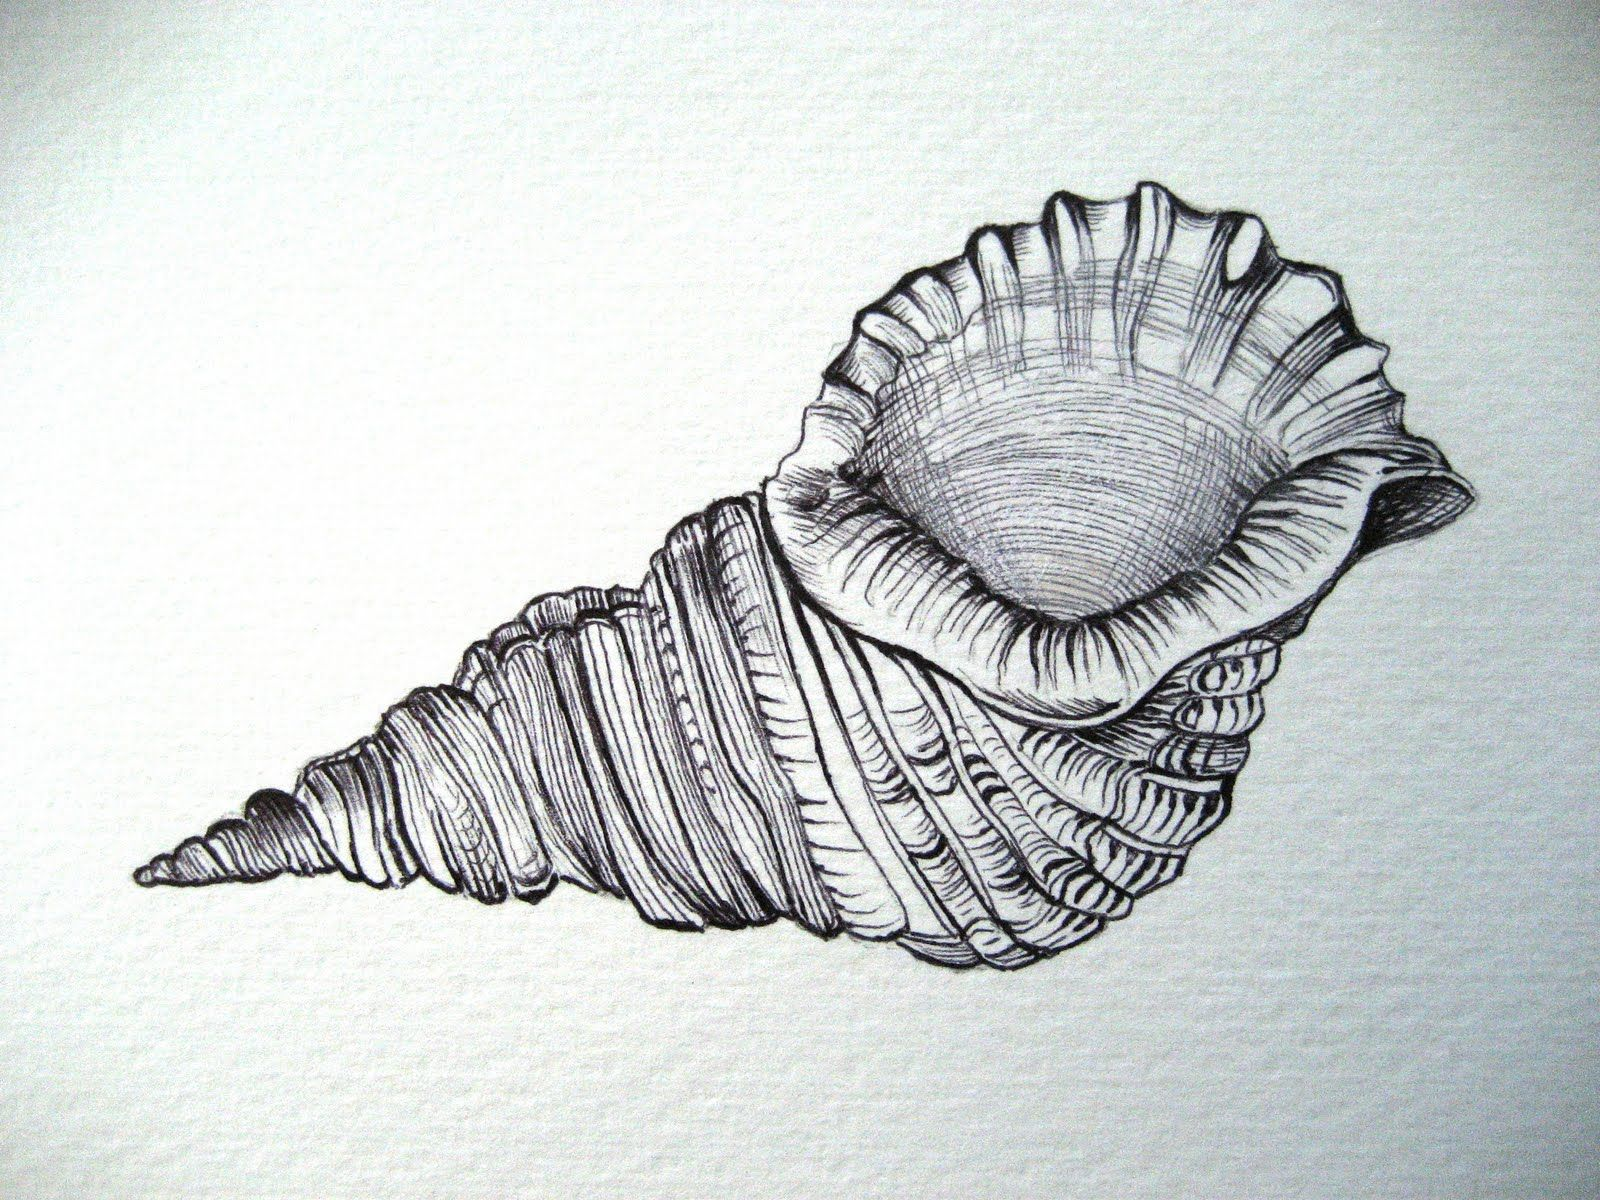 Pencil Drawings Of Seashells | www.imgkid.com - The Image ...